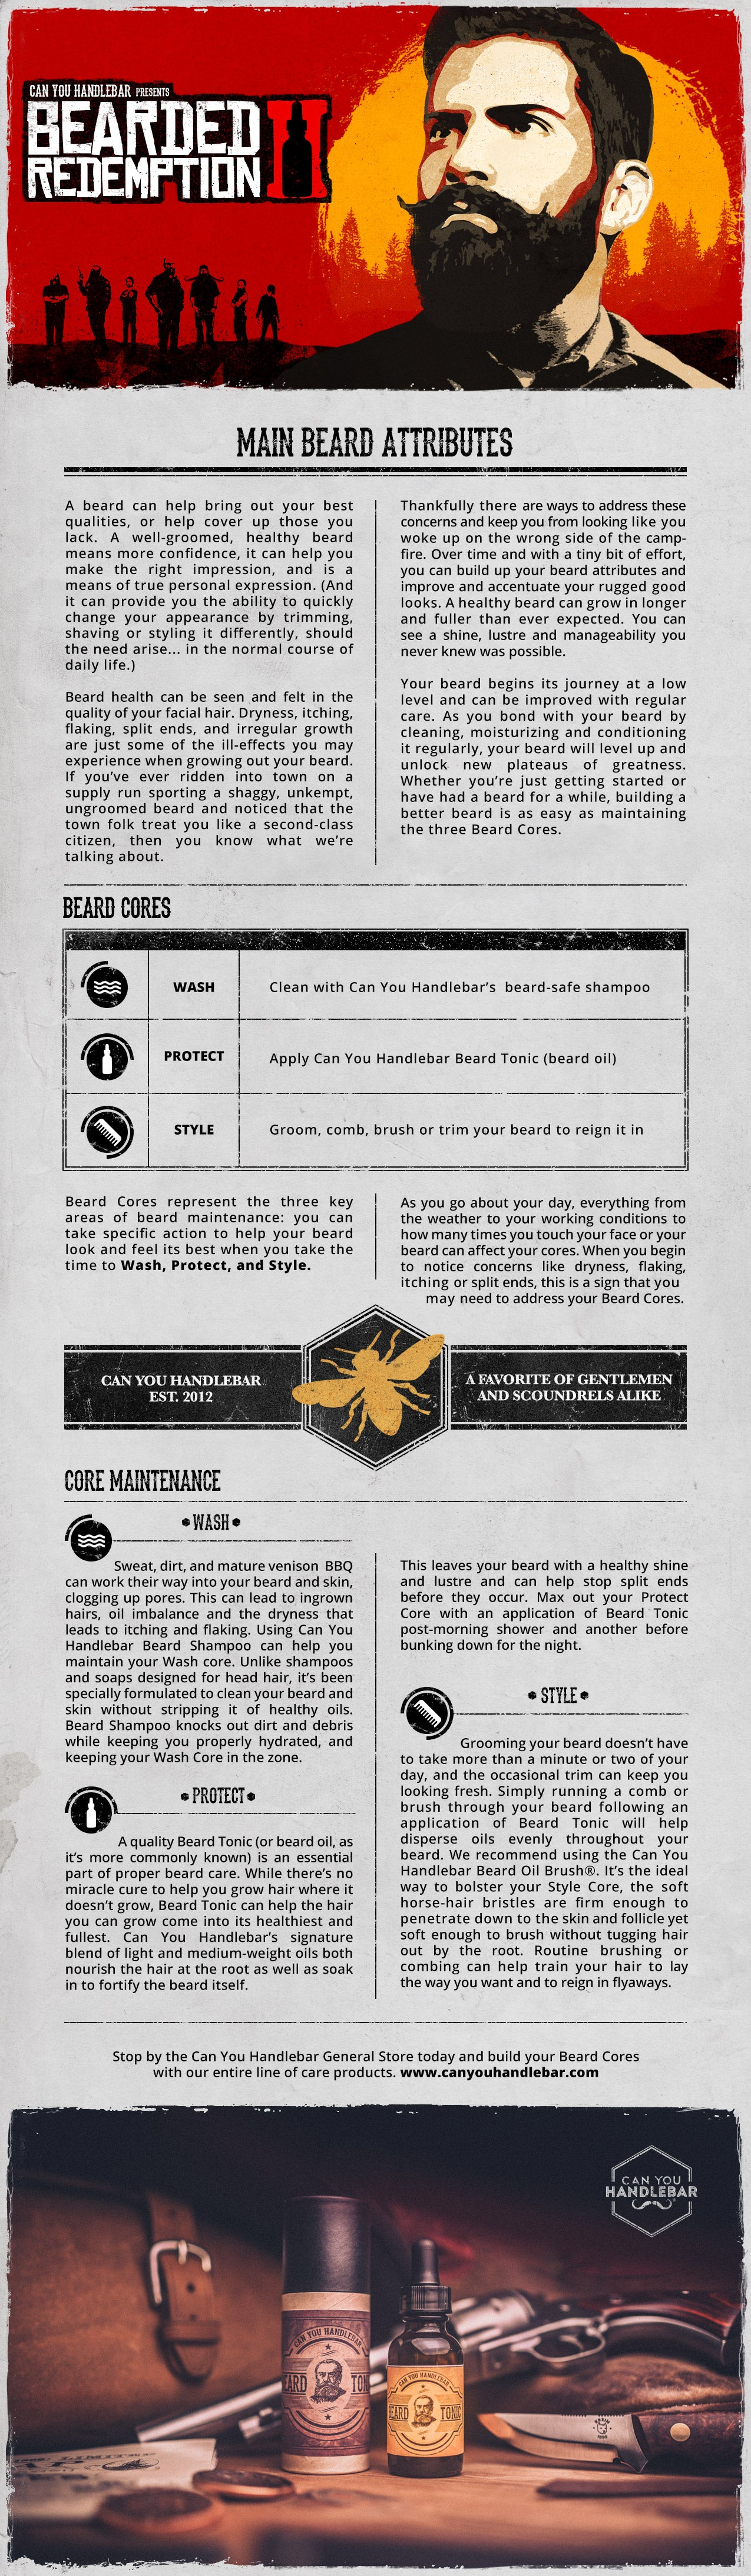 Bearded Redemption Strategy Guide Infographic